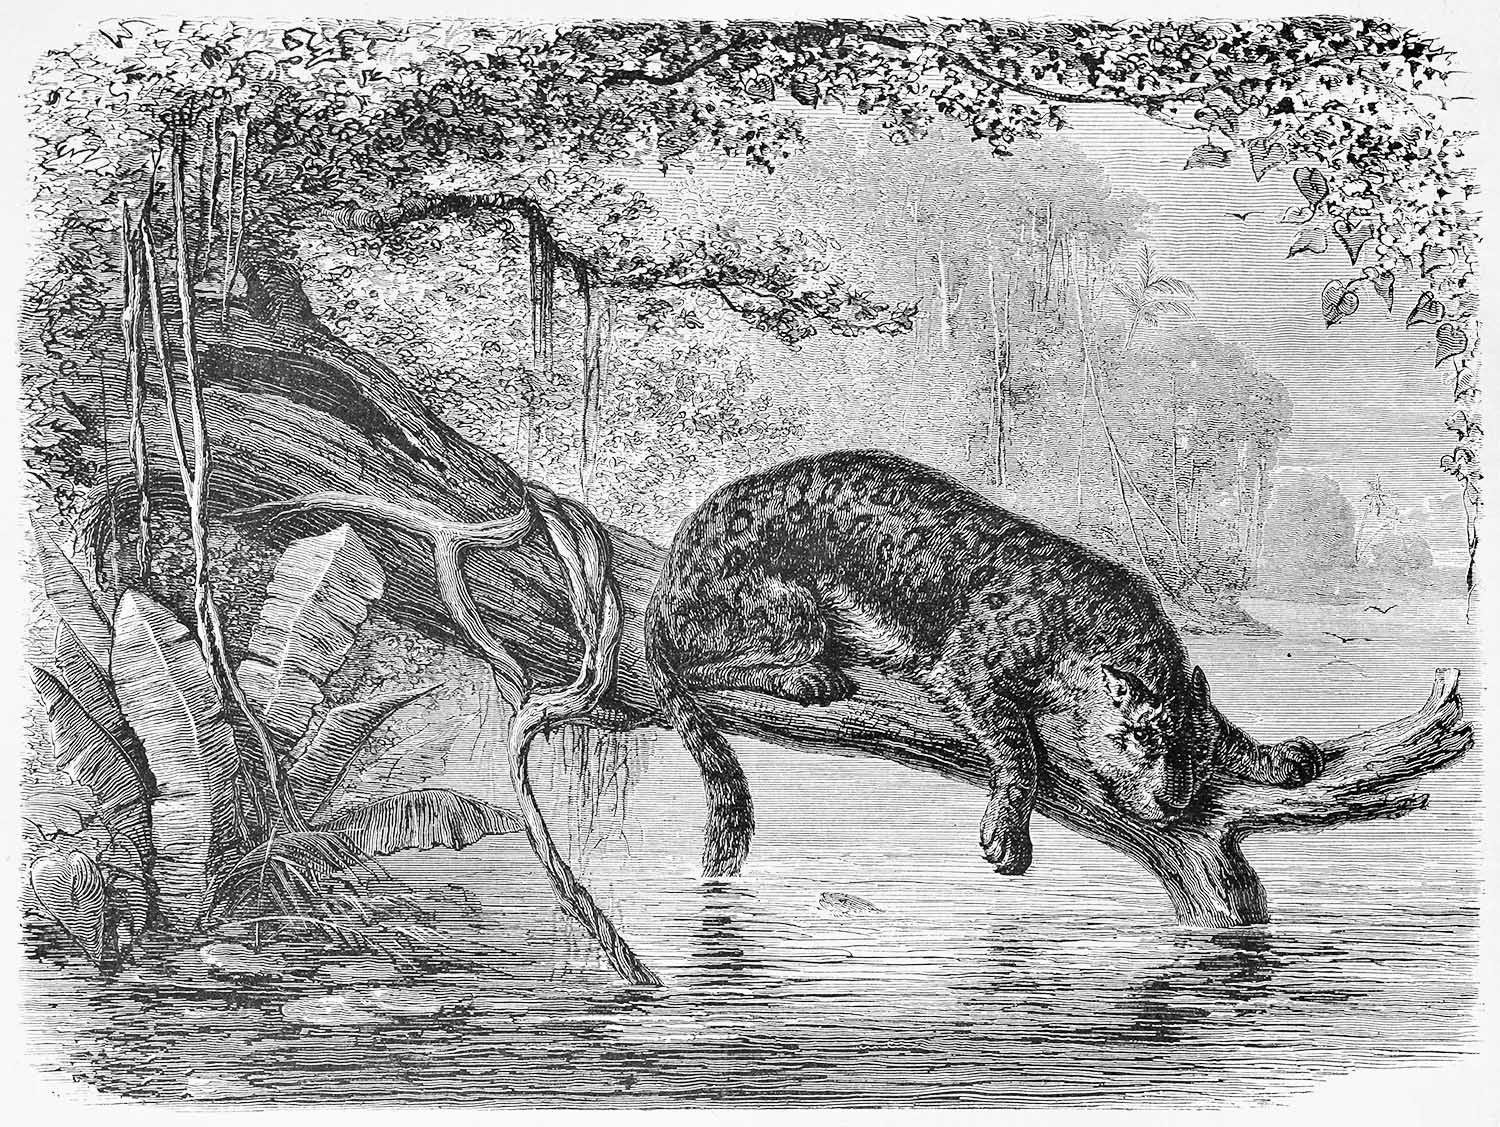 fishing jaguar in jungle illustration